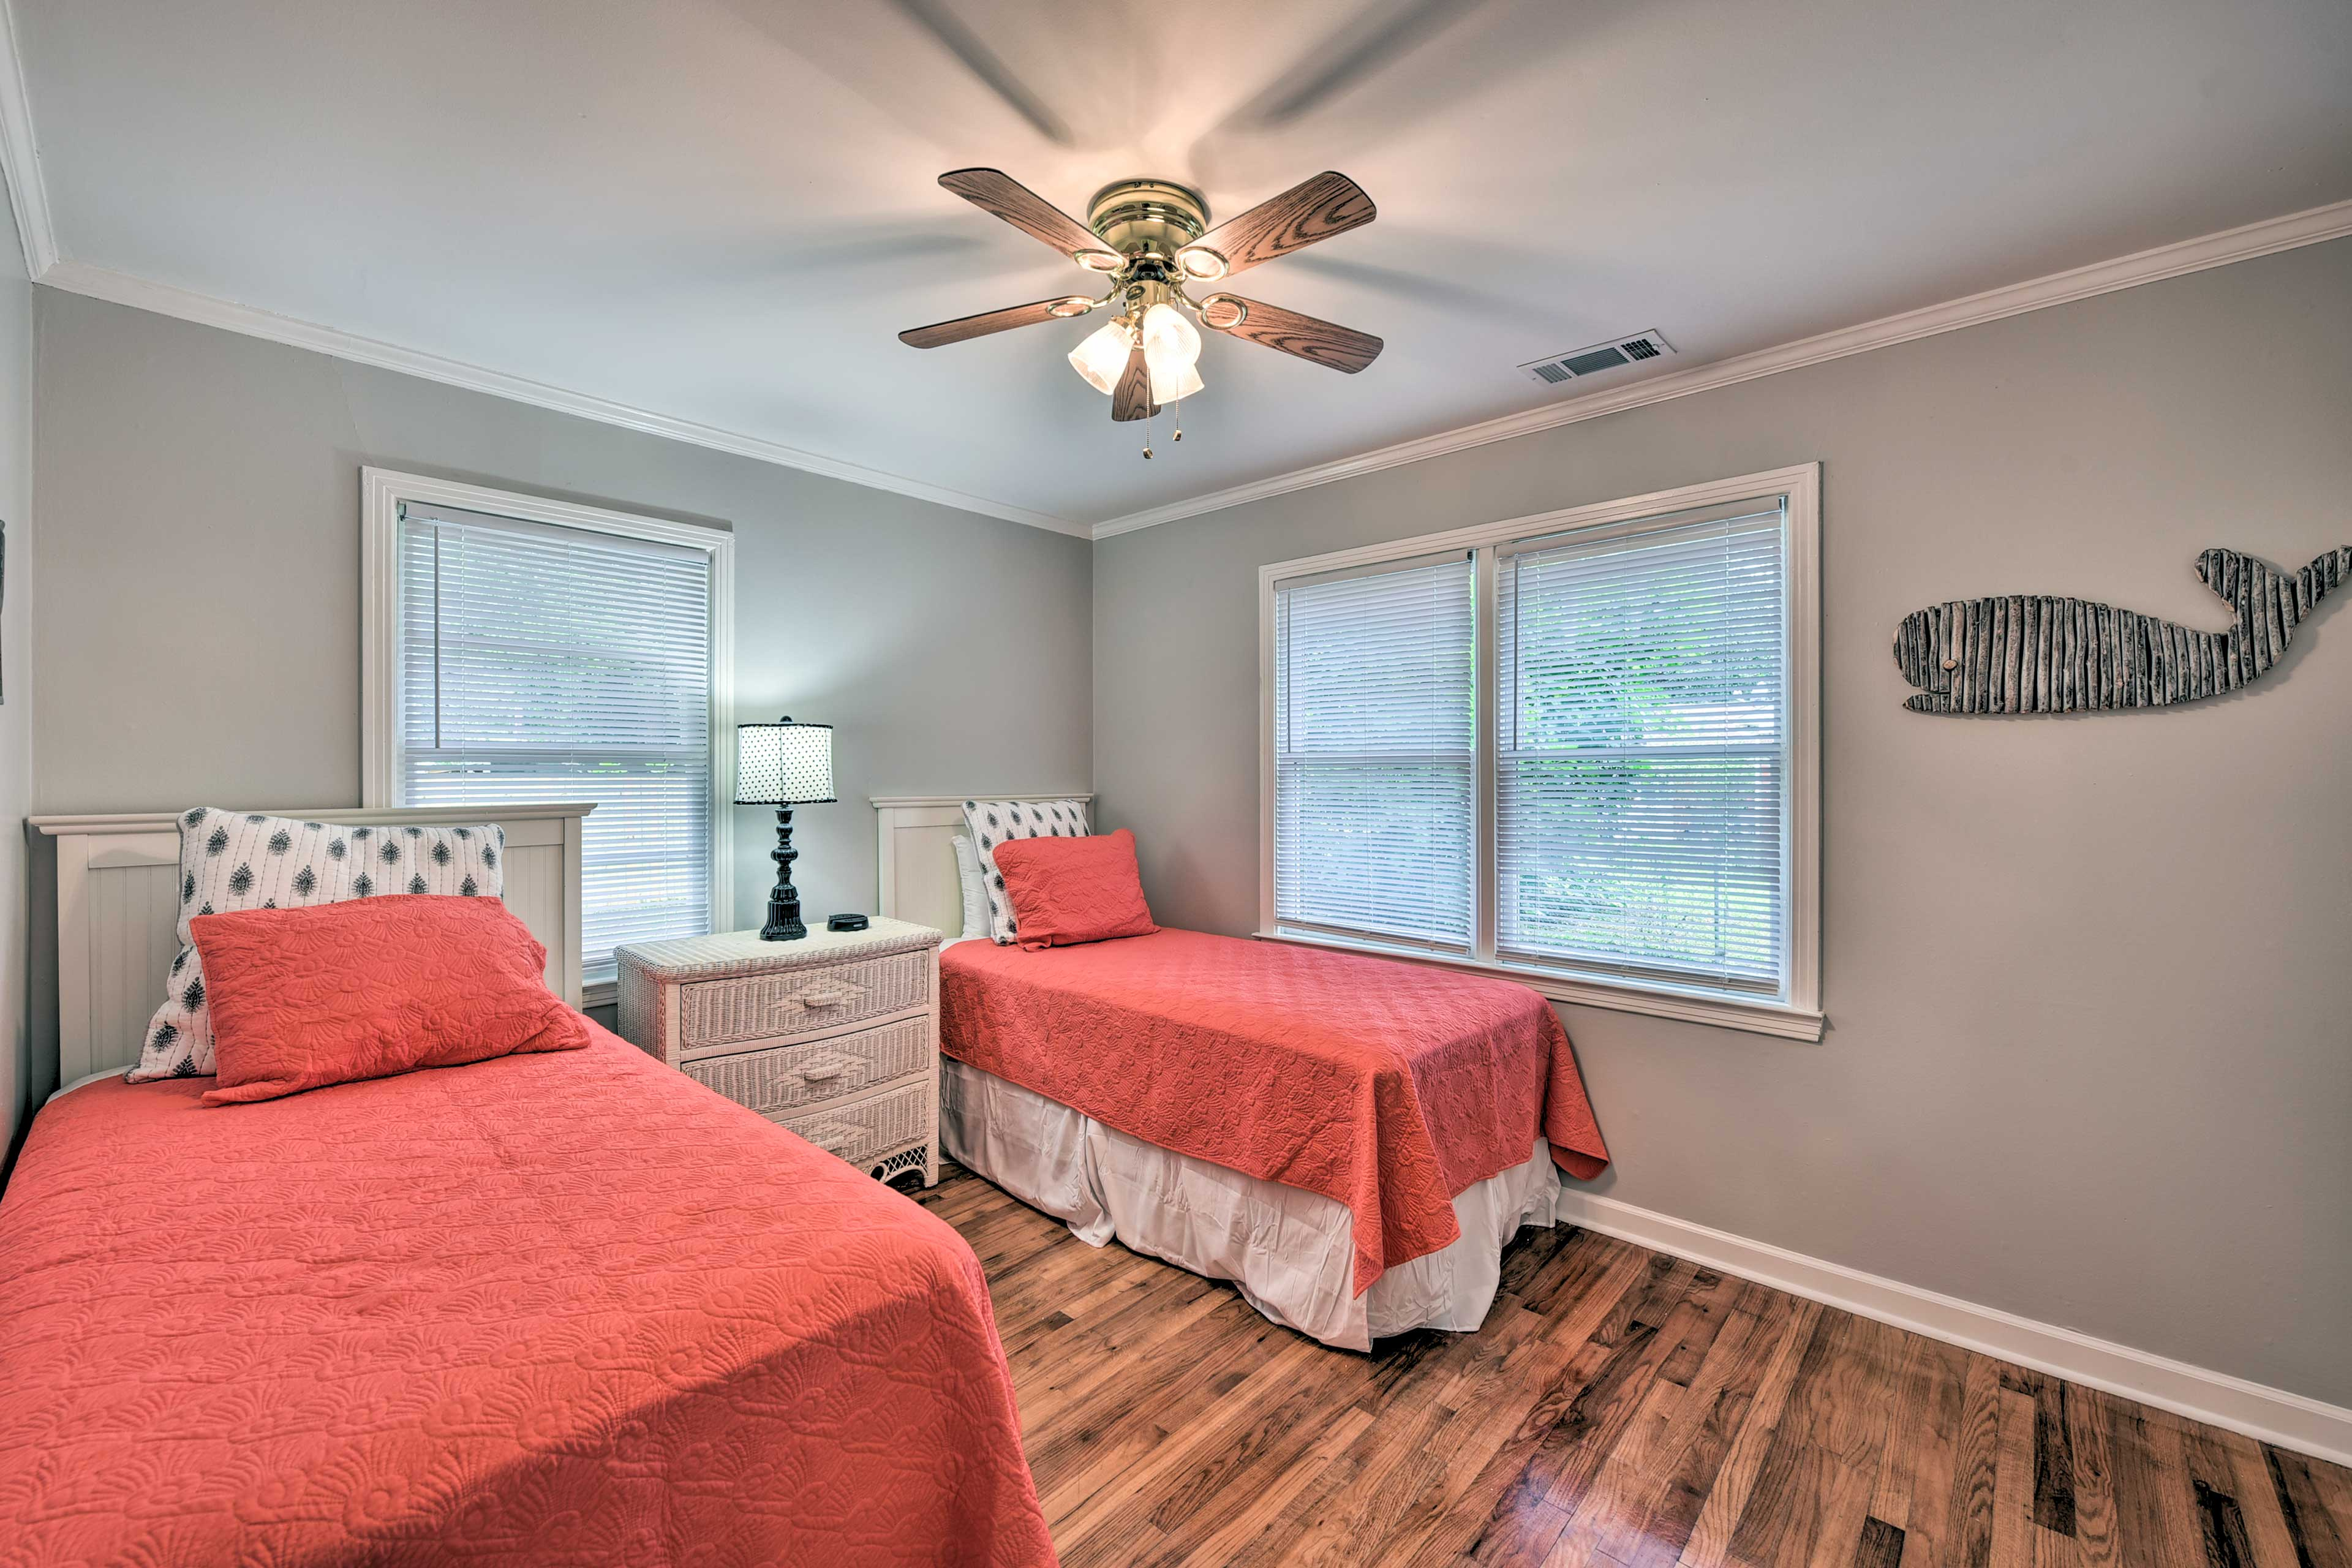 Bedroom 3 features 2 twin beds, perfect for anyone!